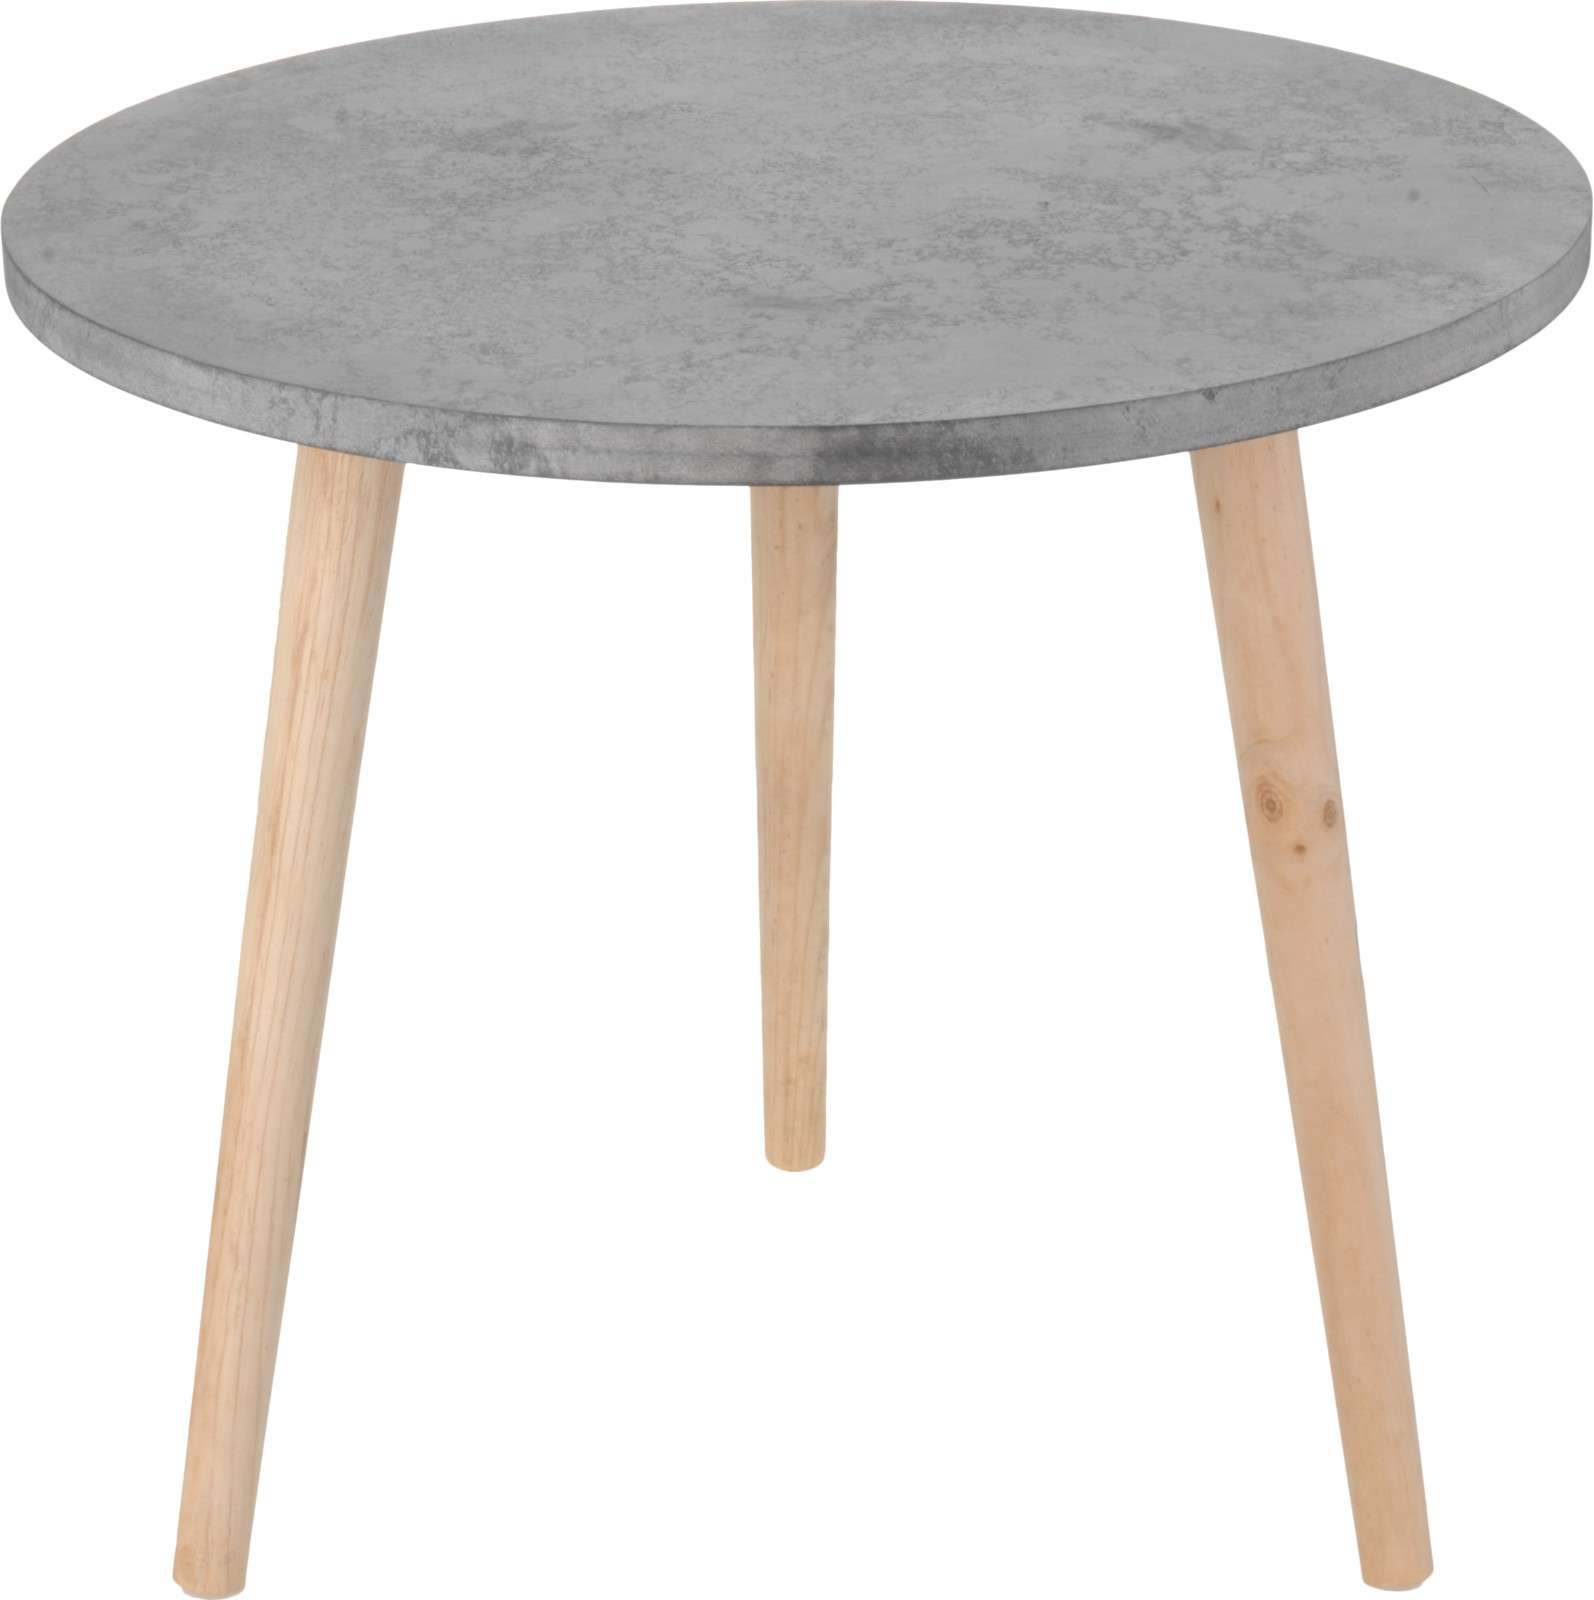 CEMENT LOOK WOOD SIDE TABLE  Thumbnail